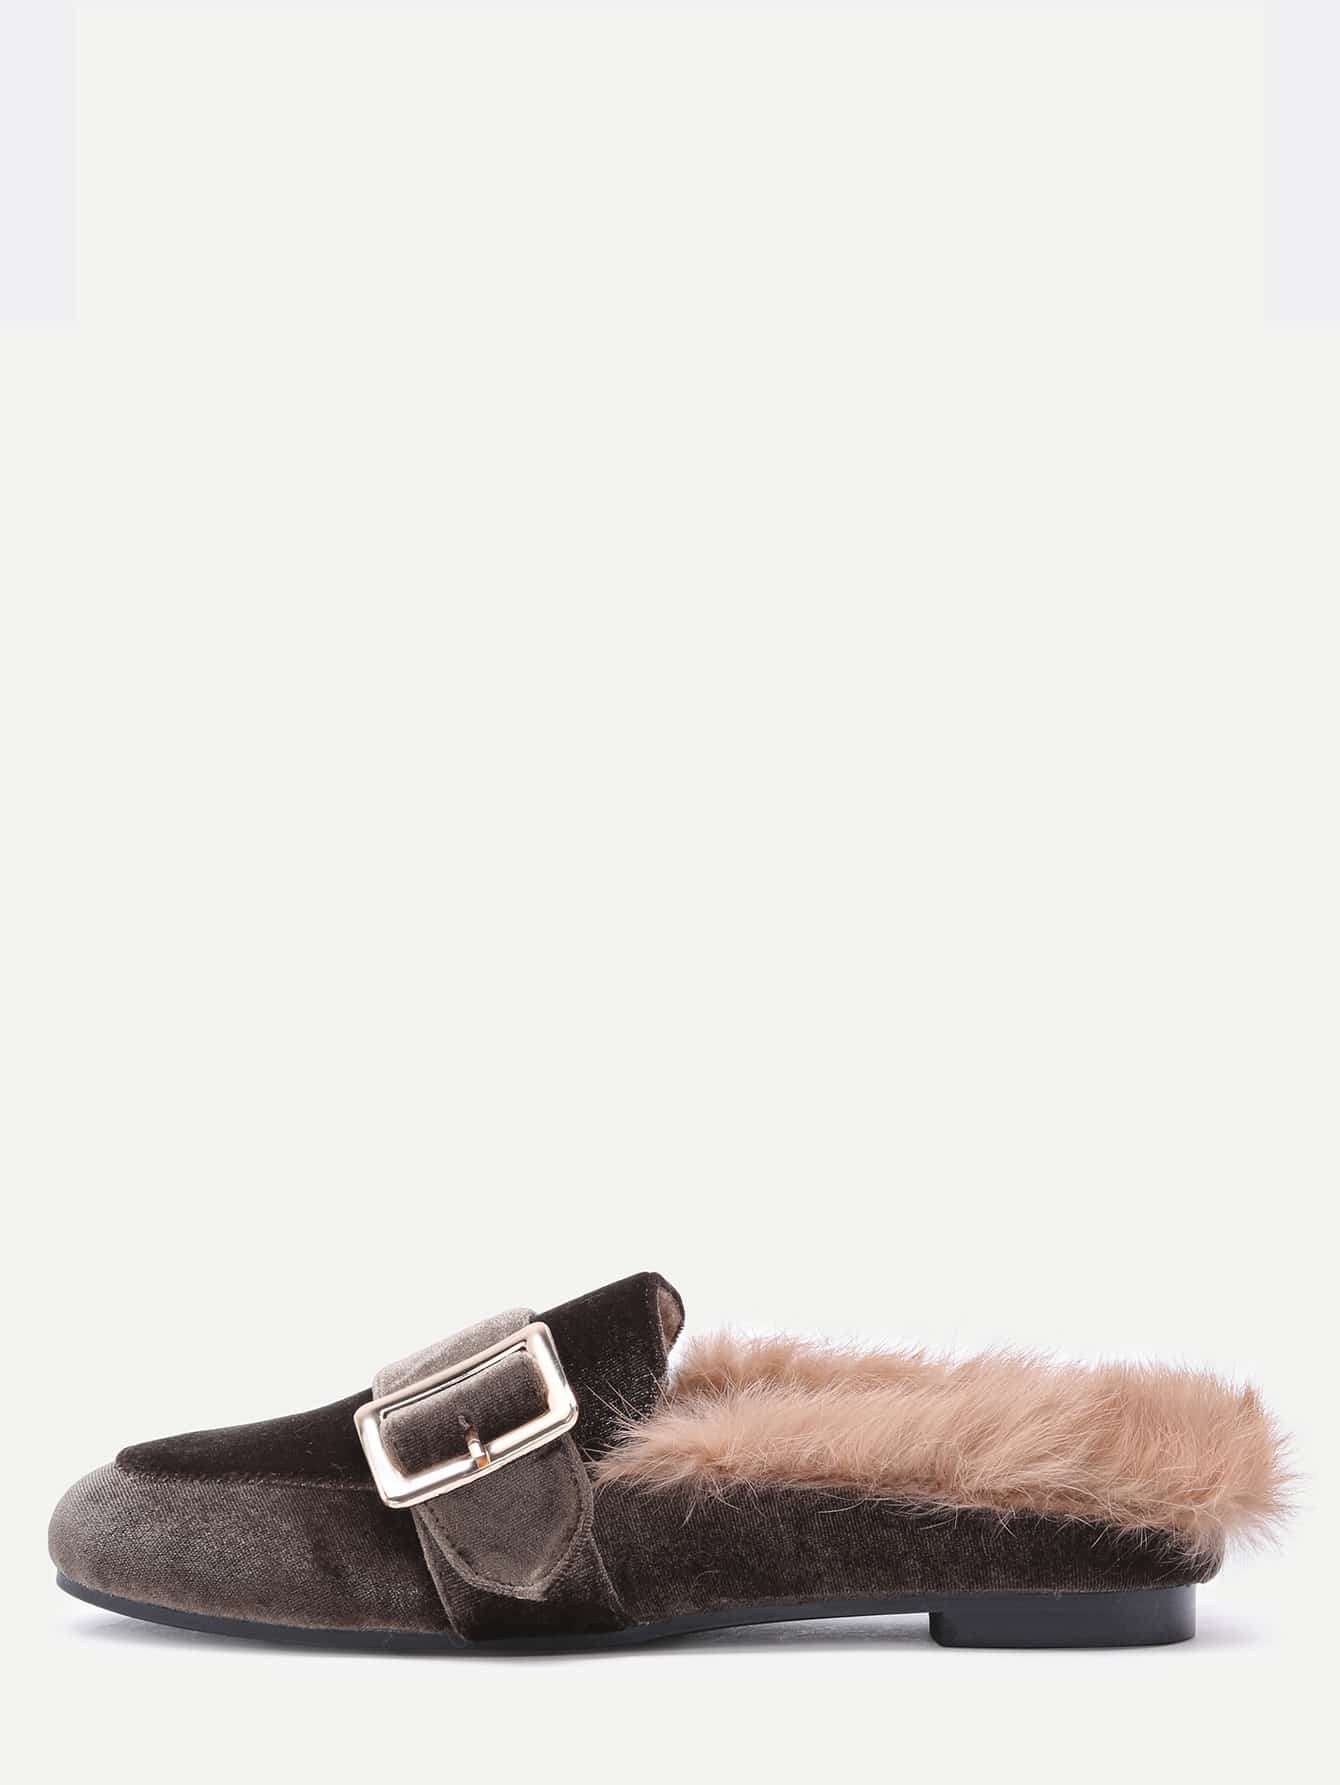 Brown Velvet Buckled Faux Fur Embellished FlatsBrown Velvet Buckled Faux Fur Embellished Flats<br><br>color: Brown<br>size: EUR37,EUR39